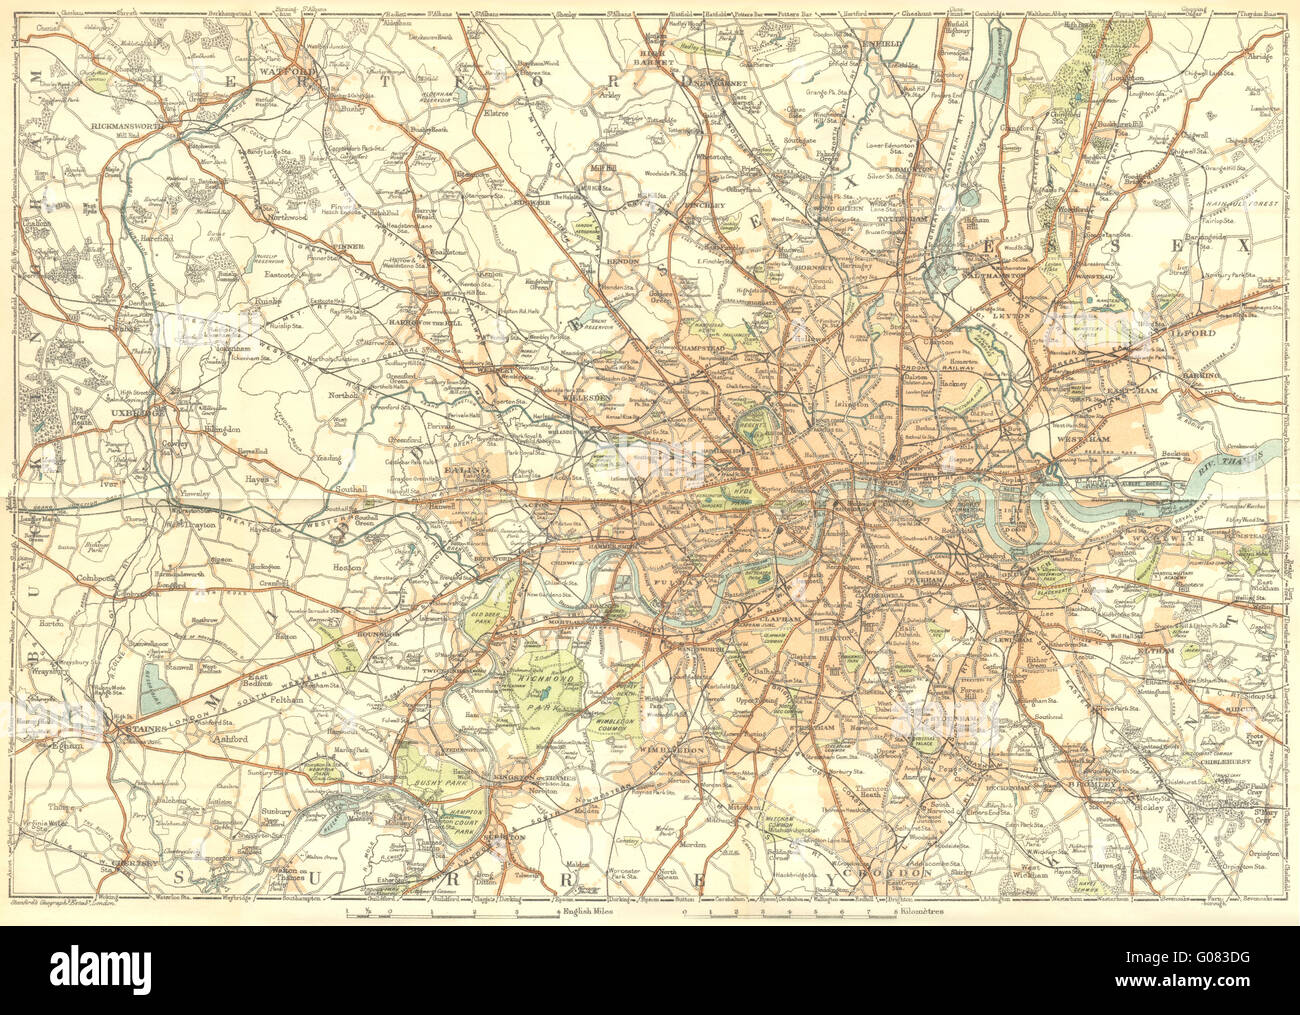 london area of 1924 vintage map stock image